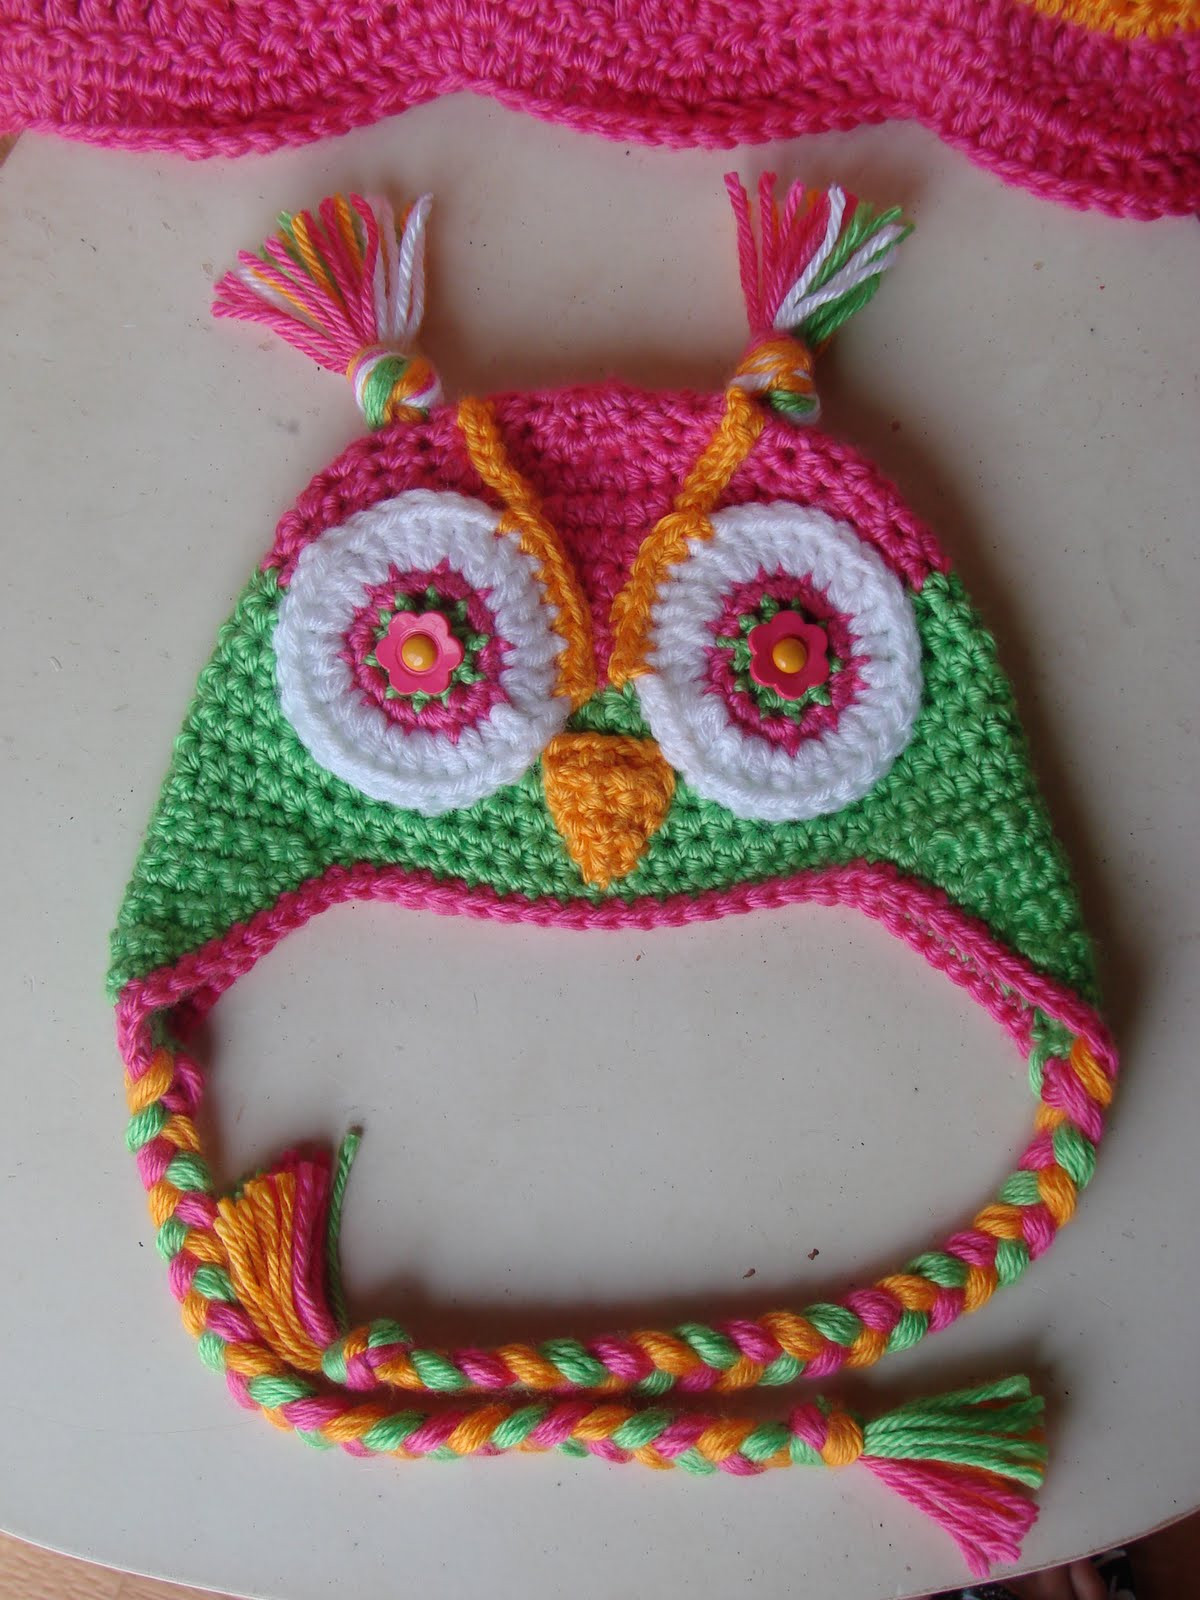 Crochet in Color Another Finished Project YAaY